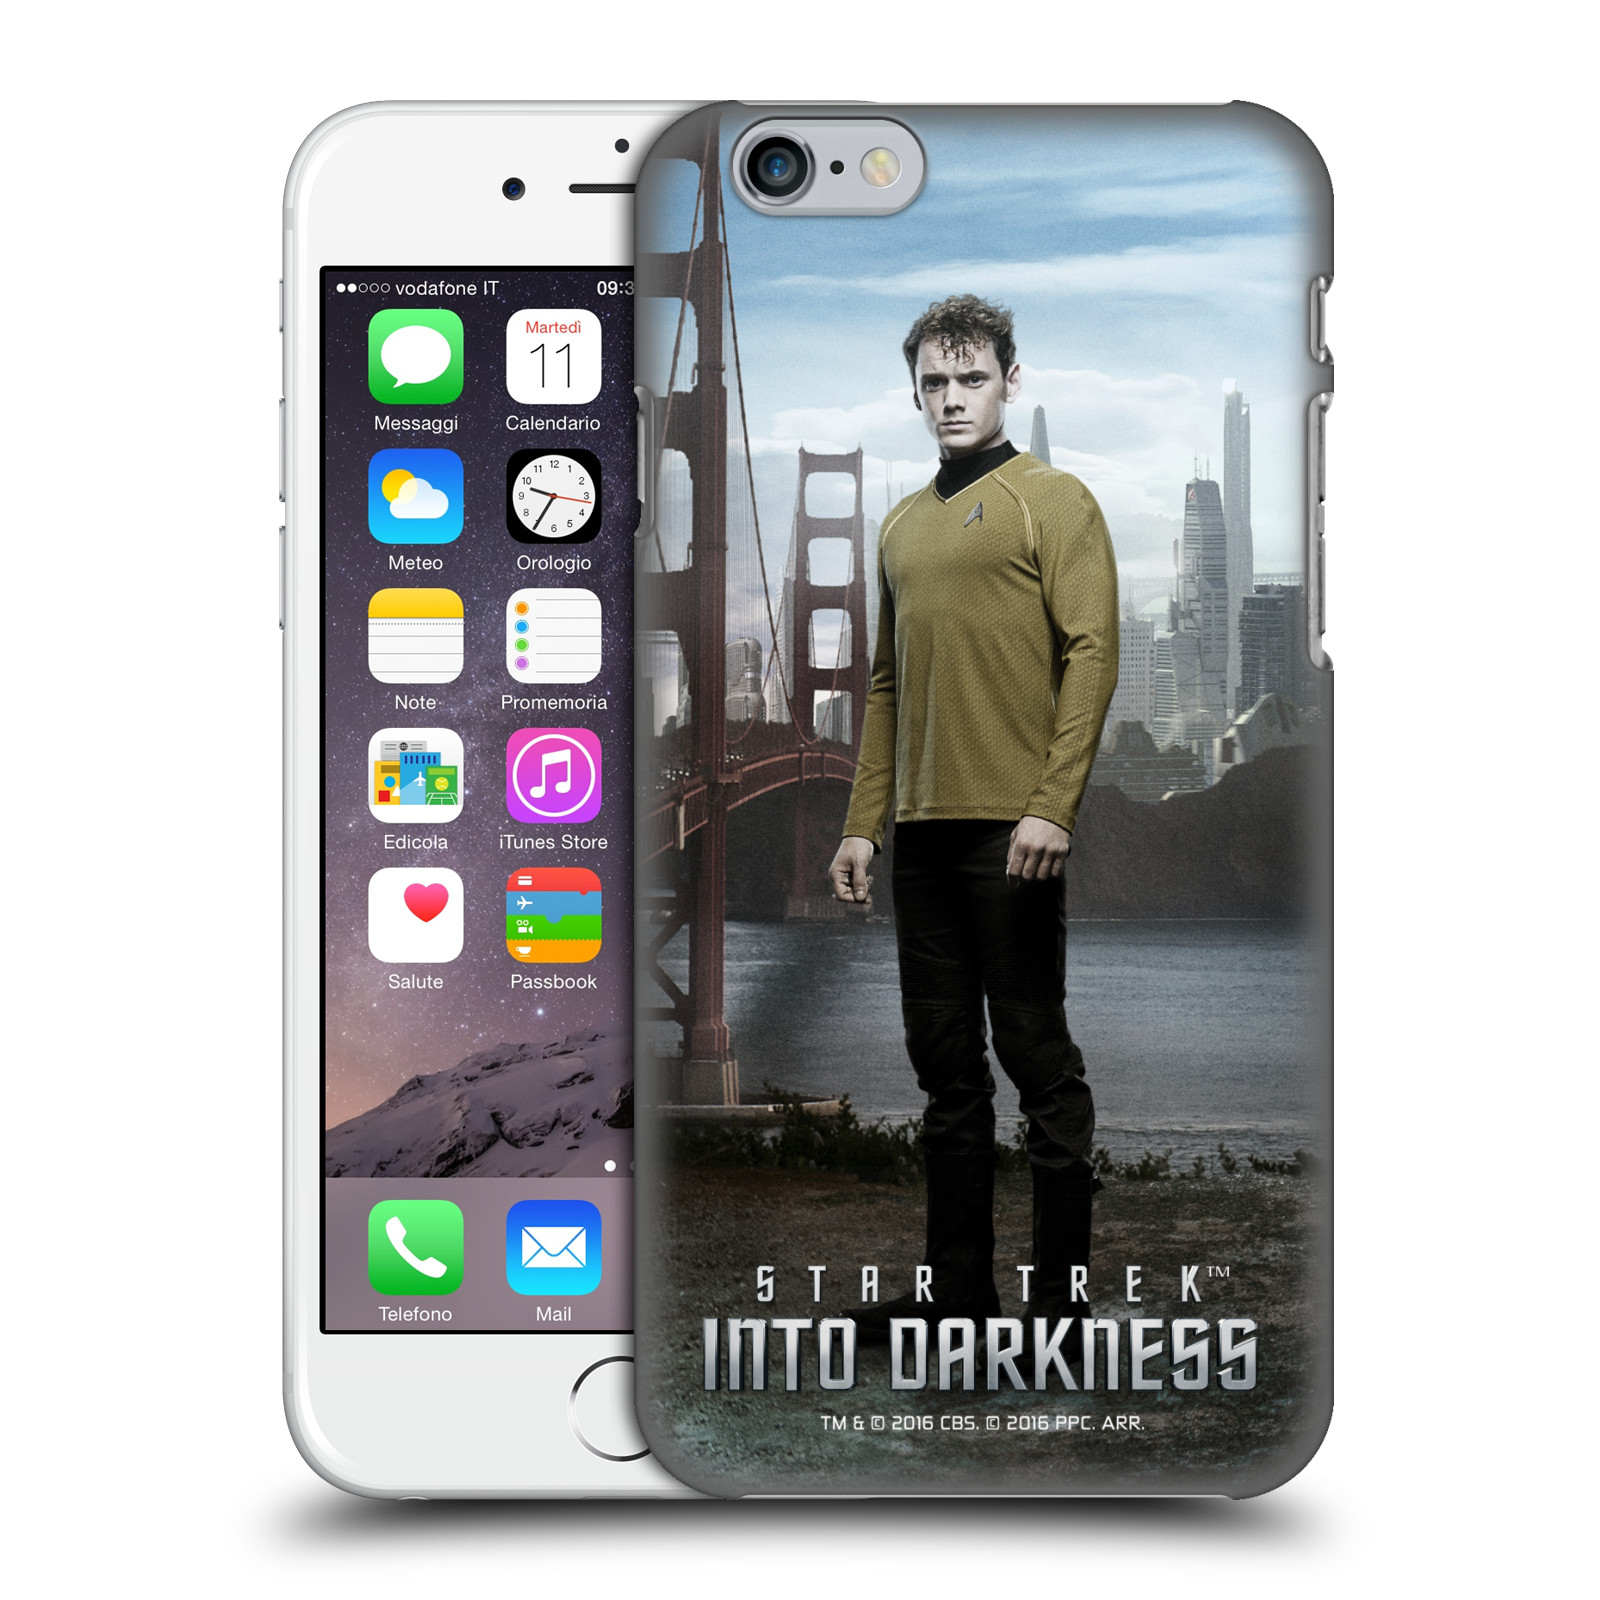 Star Trek Characters Into Darkness XII-Chekov